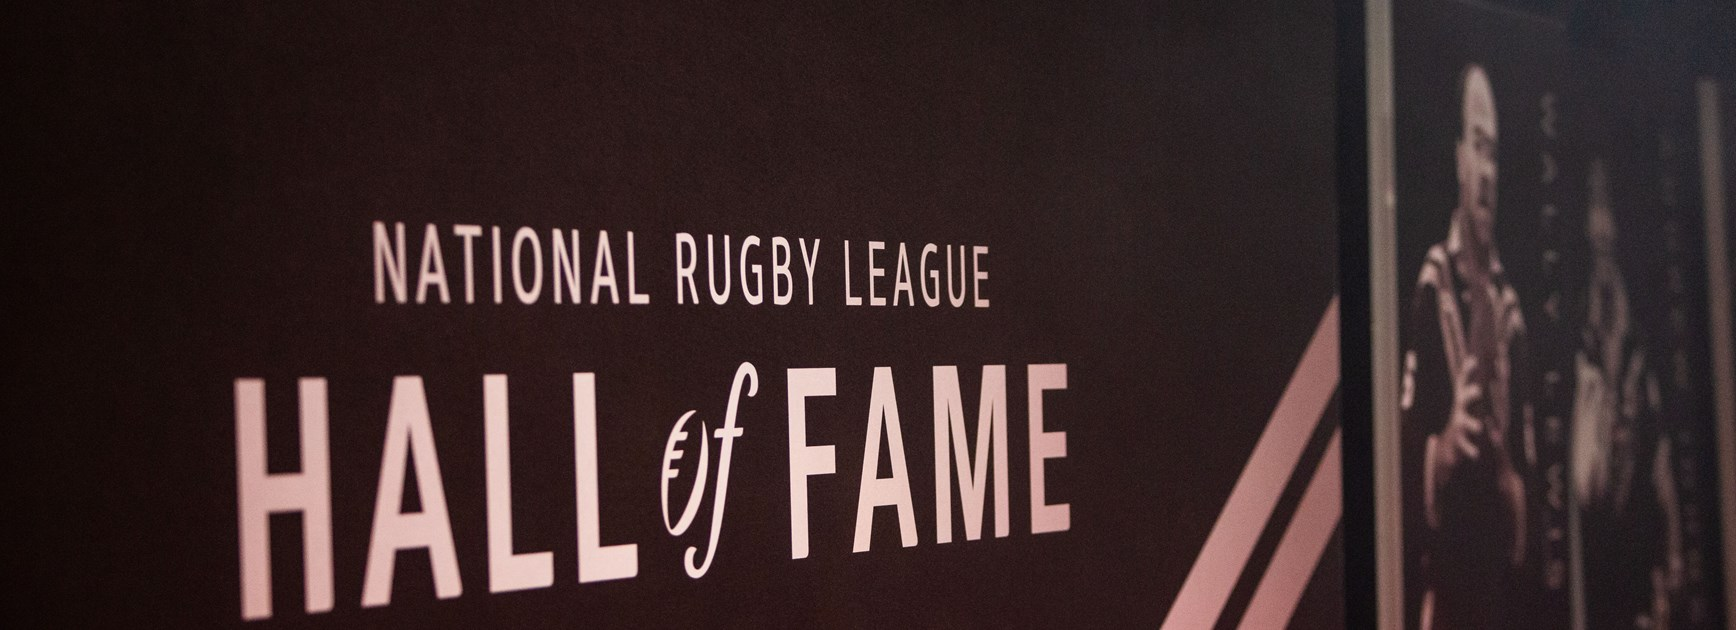 NRL Hall of Fame 2019 Class inducted